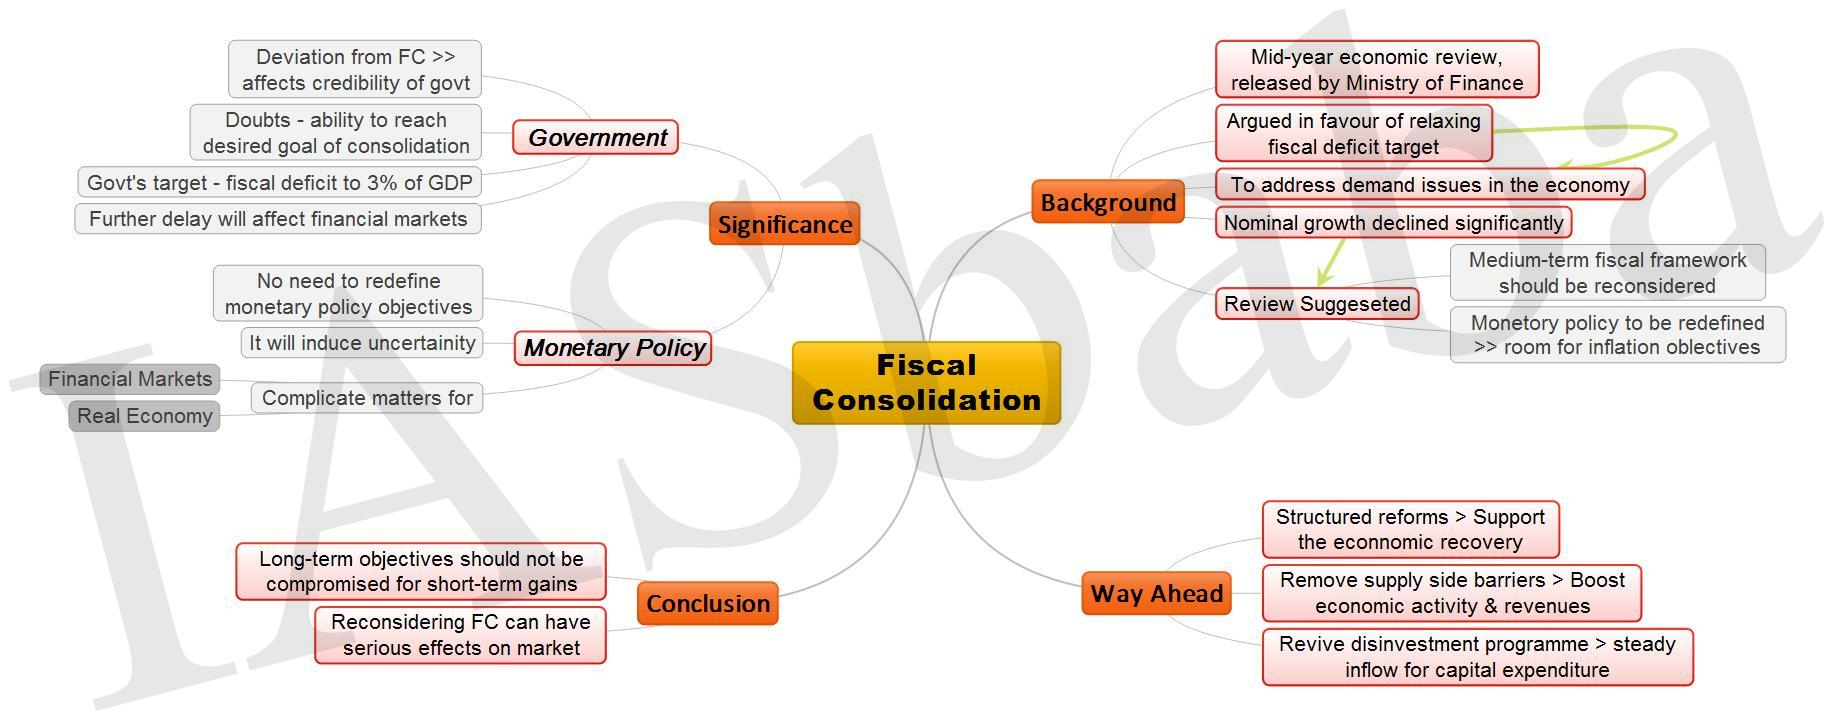 Fiscal Consolidation JPEG